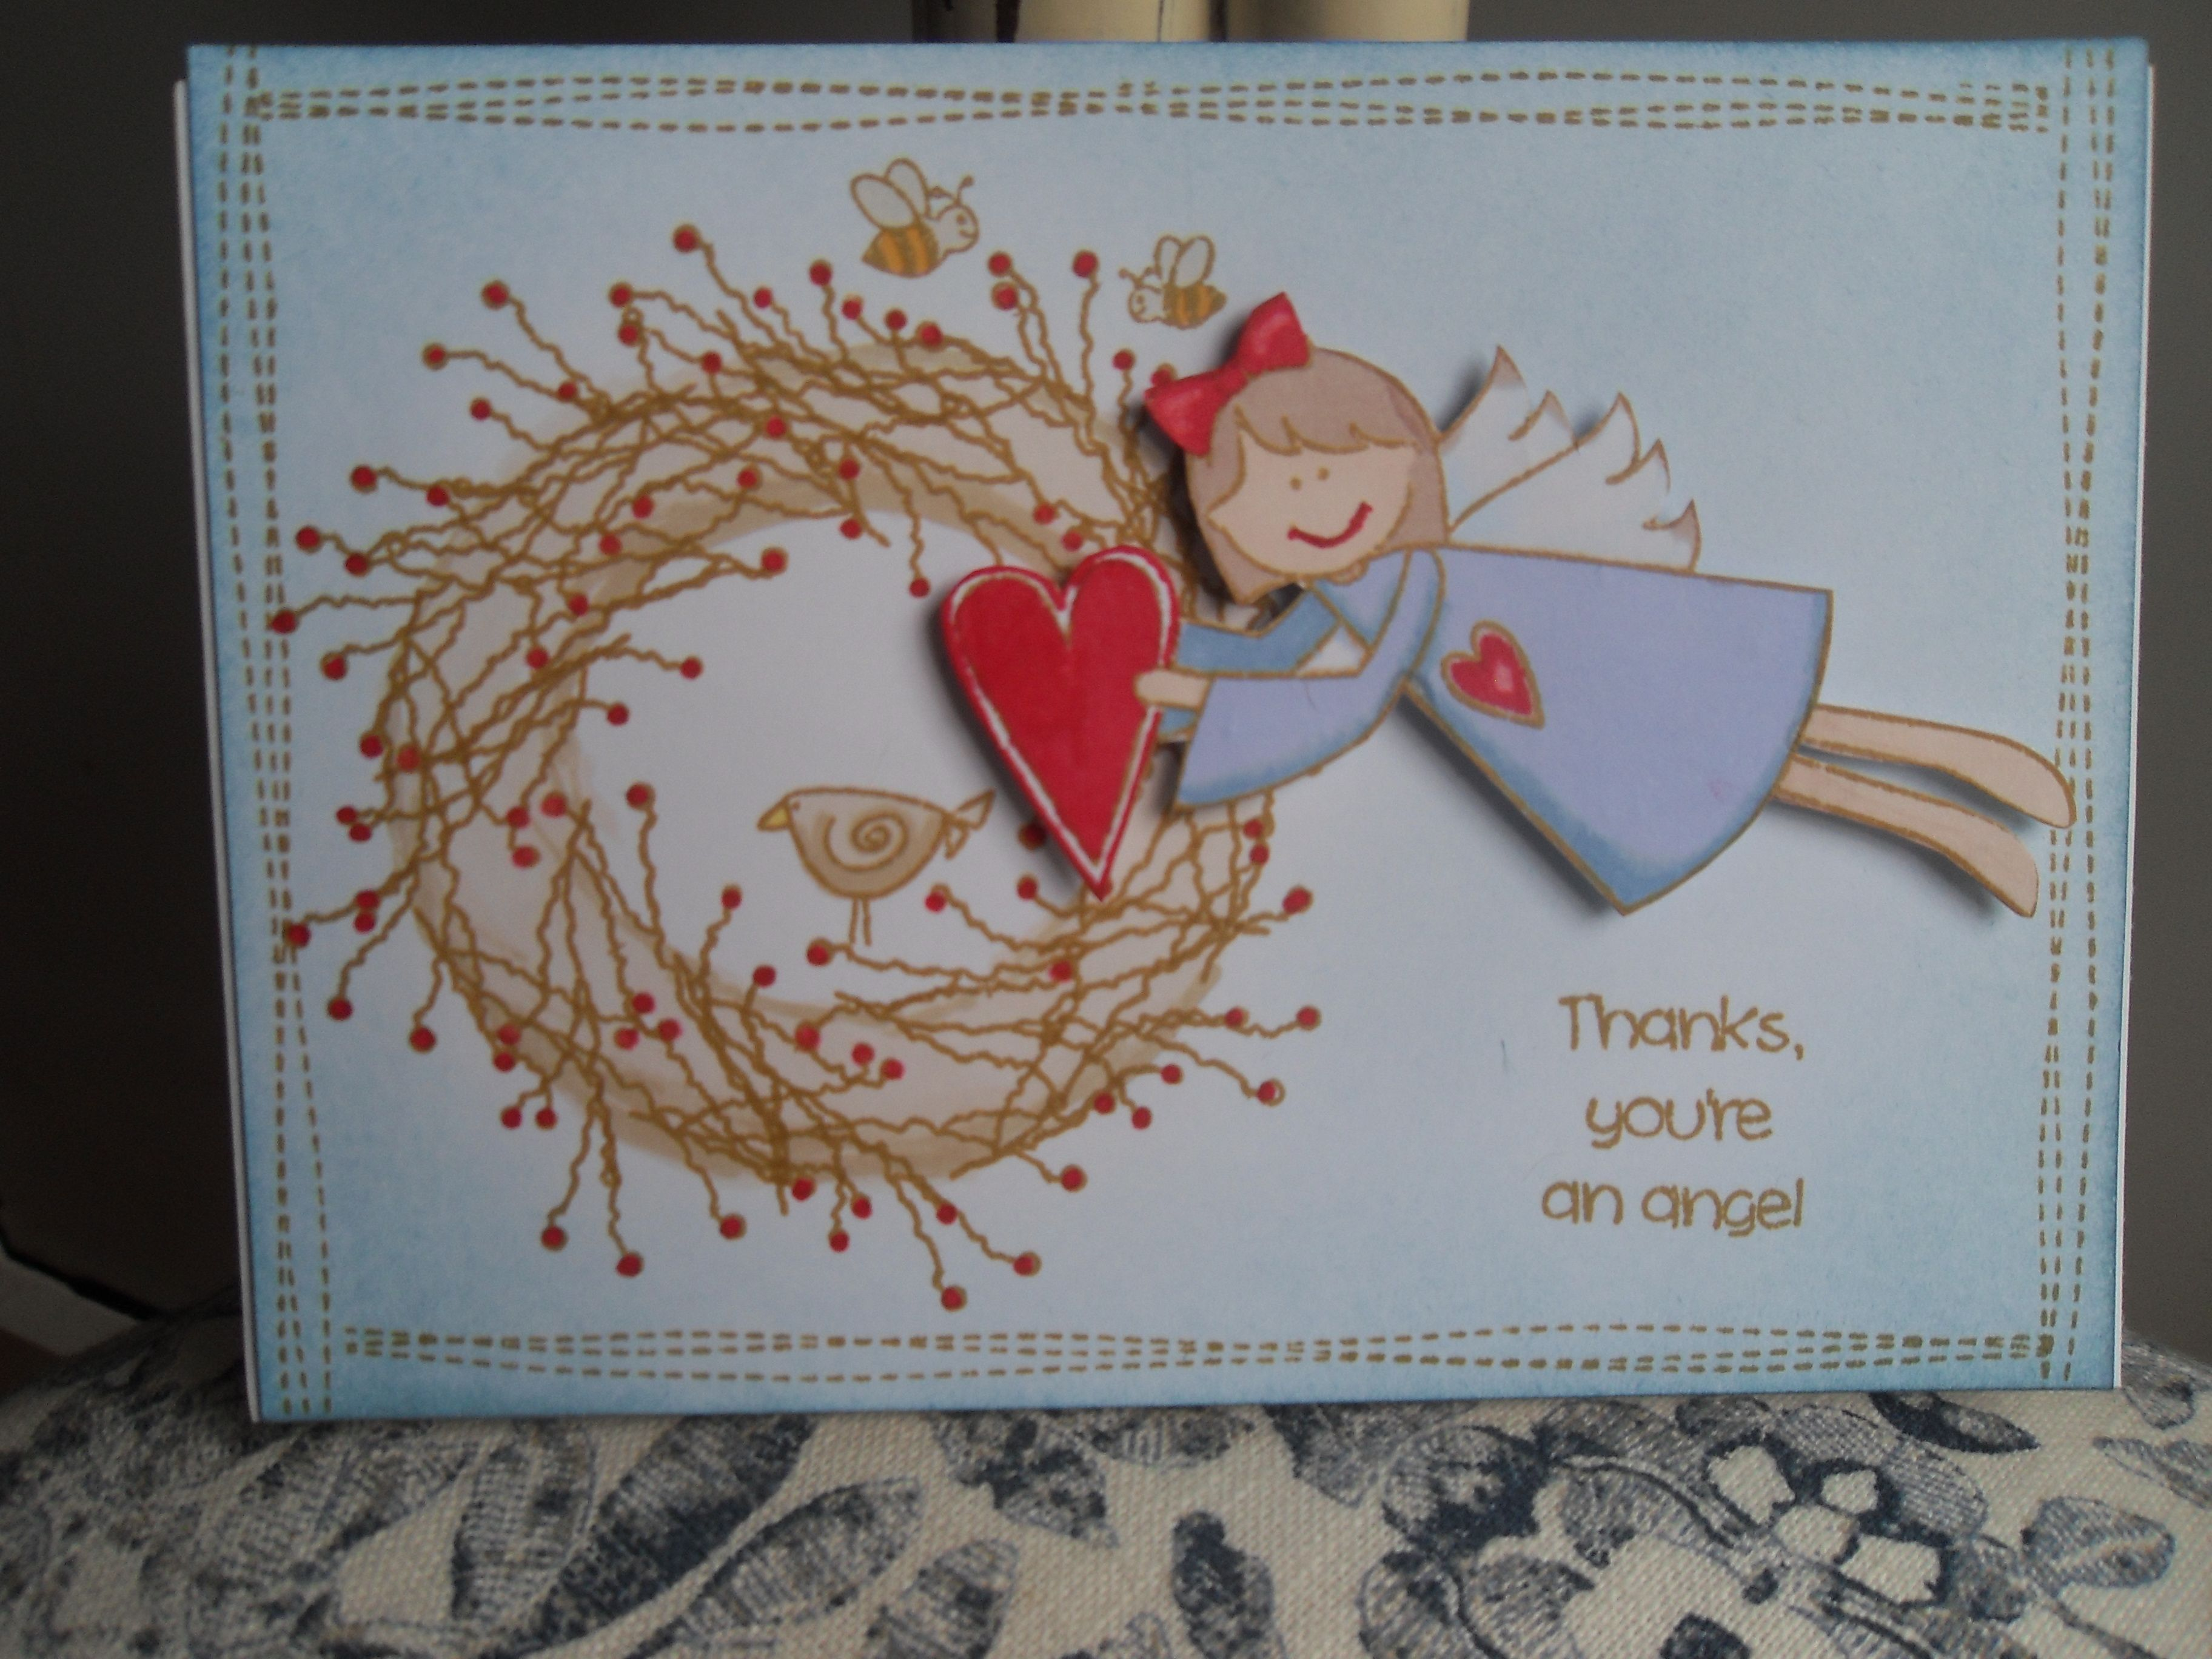 Thank you card using inky doodle stamps.